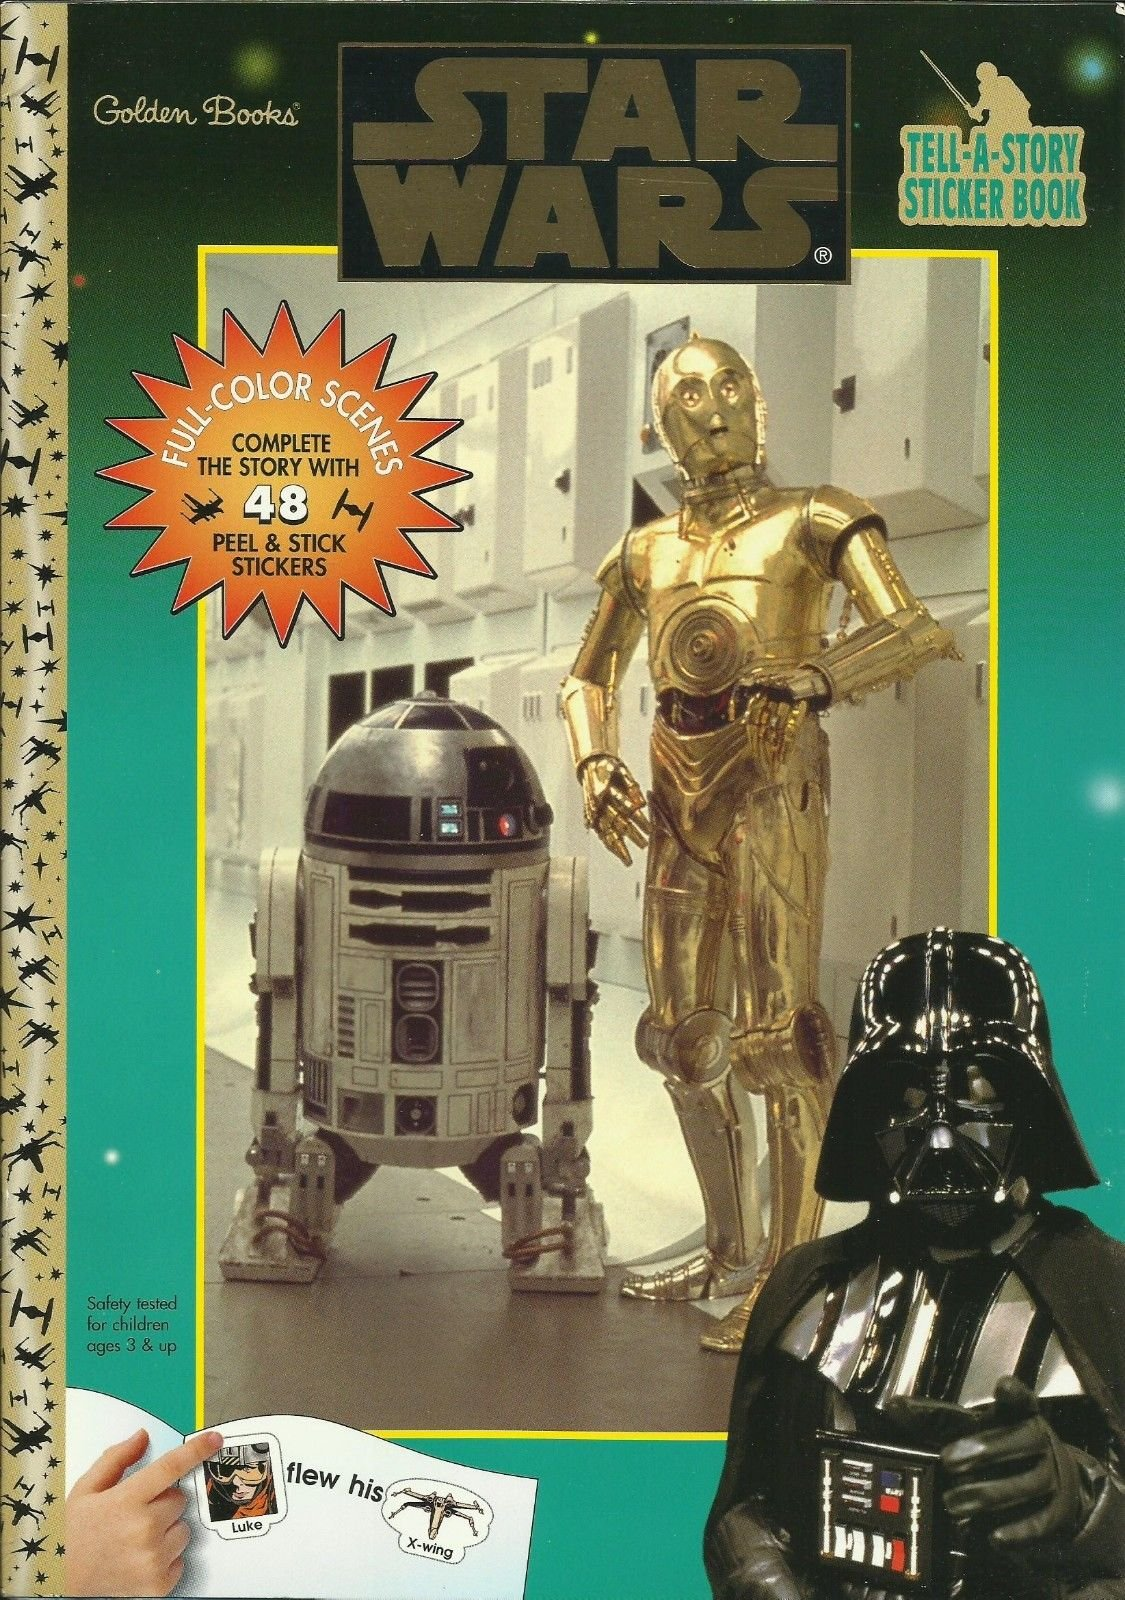 Star Wars Tell-a-Story Sticker Book